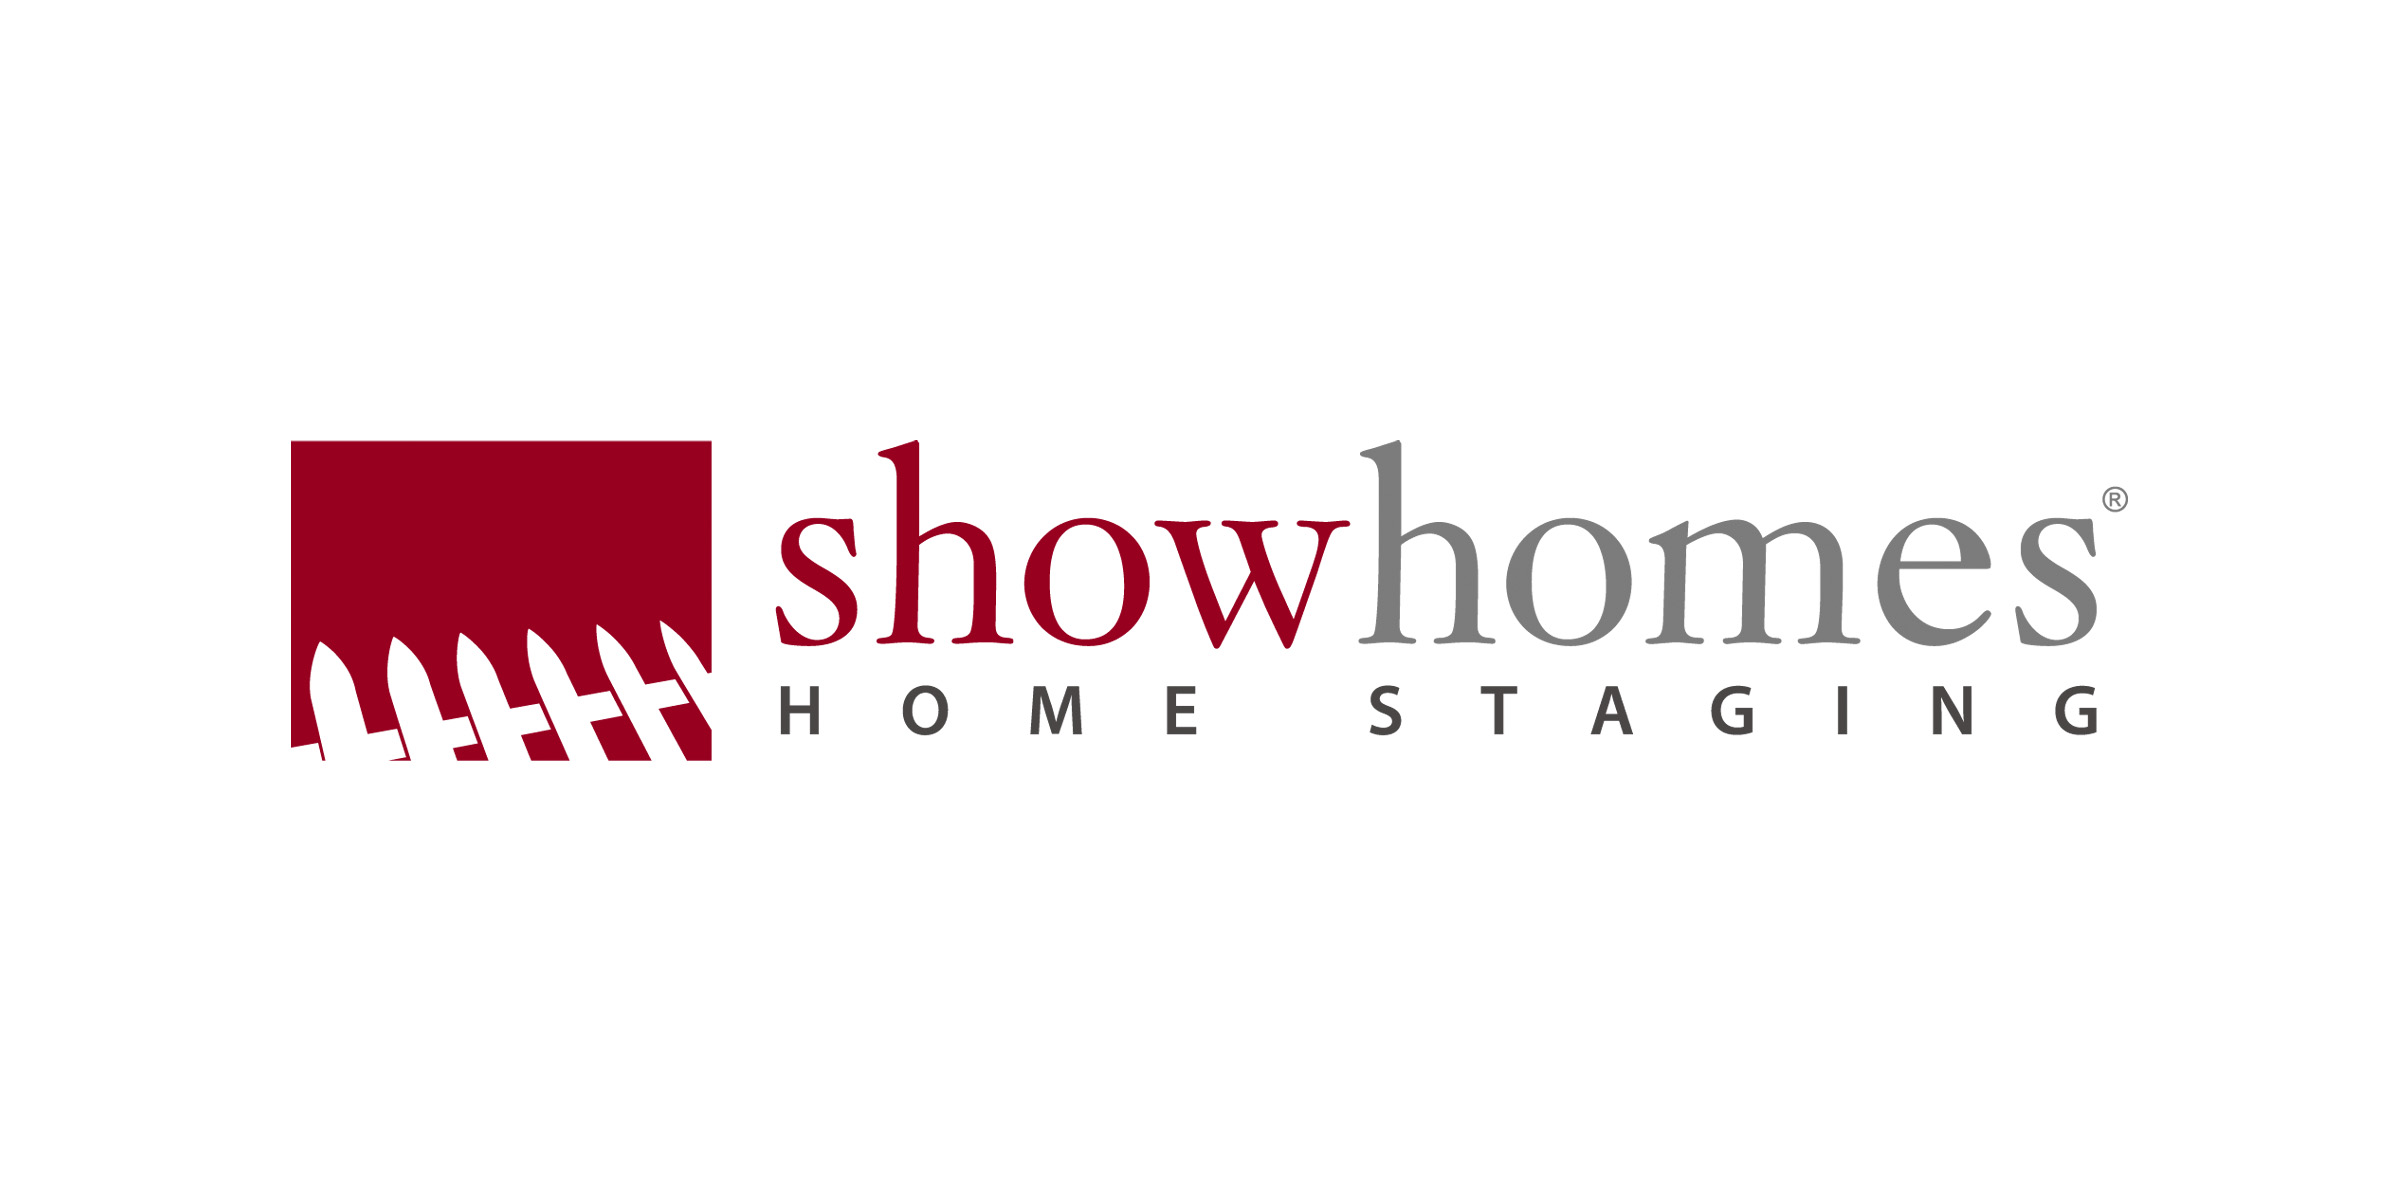 showhomes franchise cost opportunities 2017 franchise help franchise